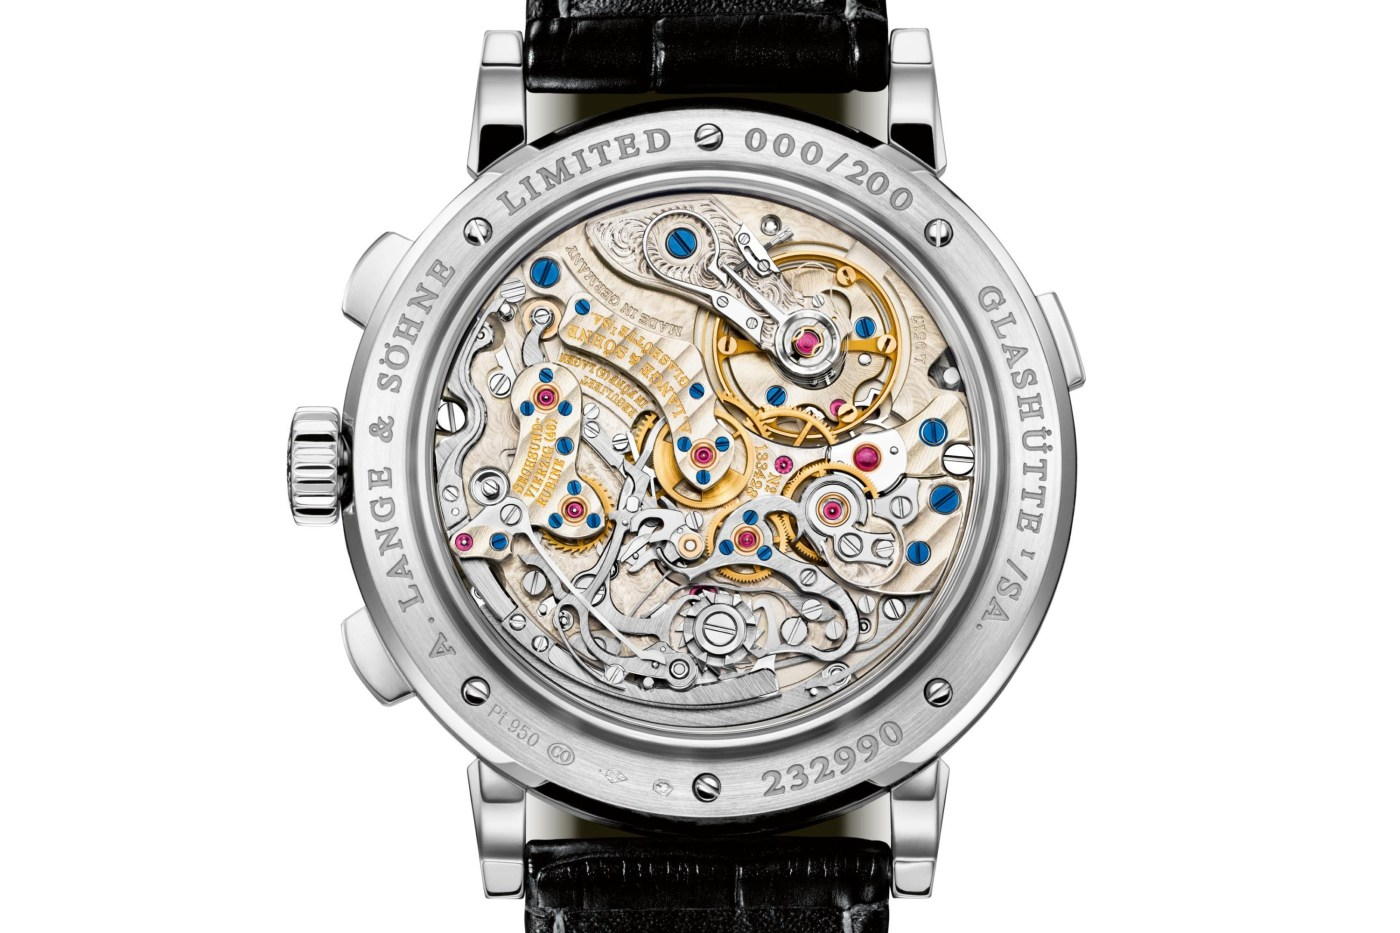 Lange Datograph Up/Down Lumen caseback